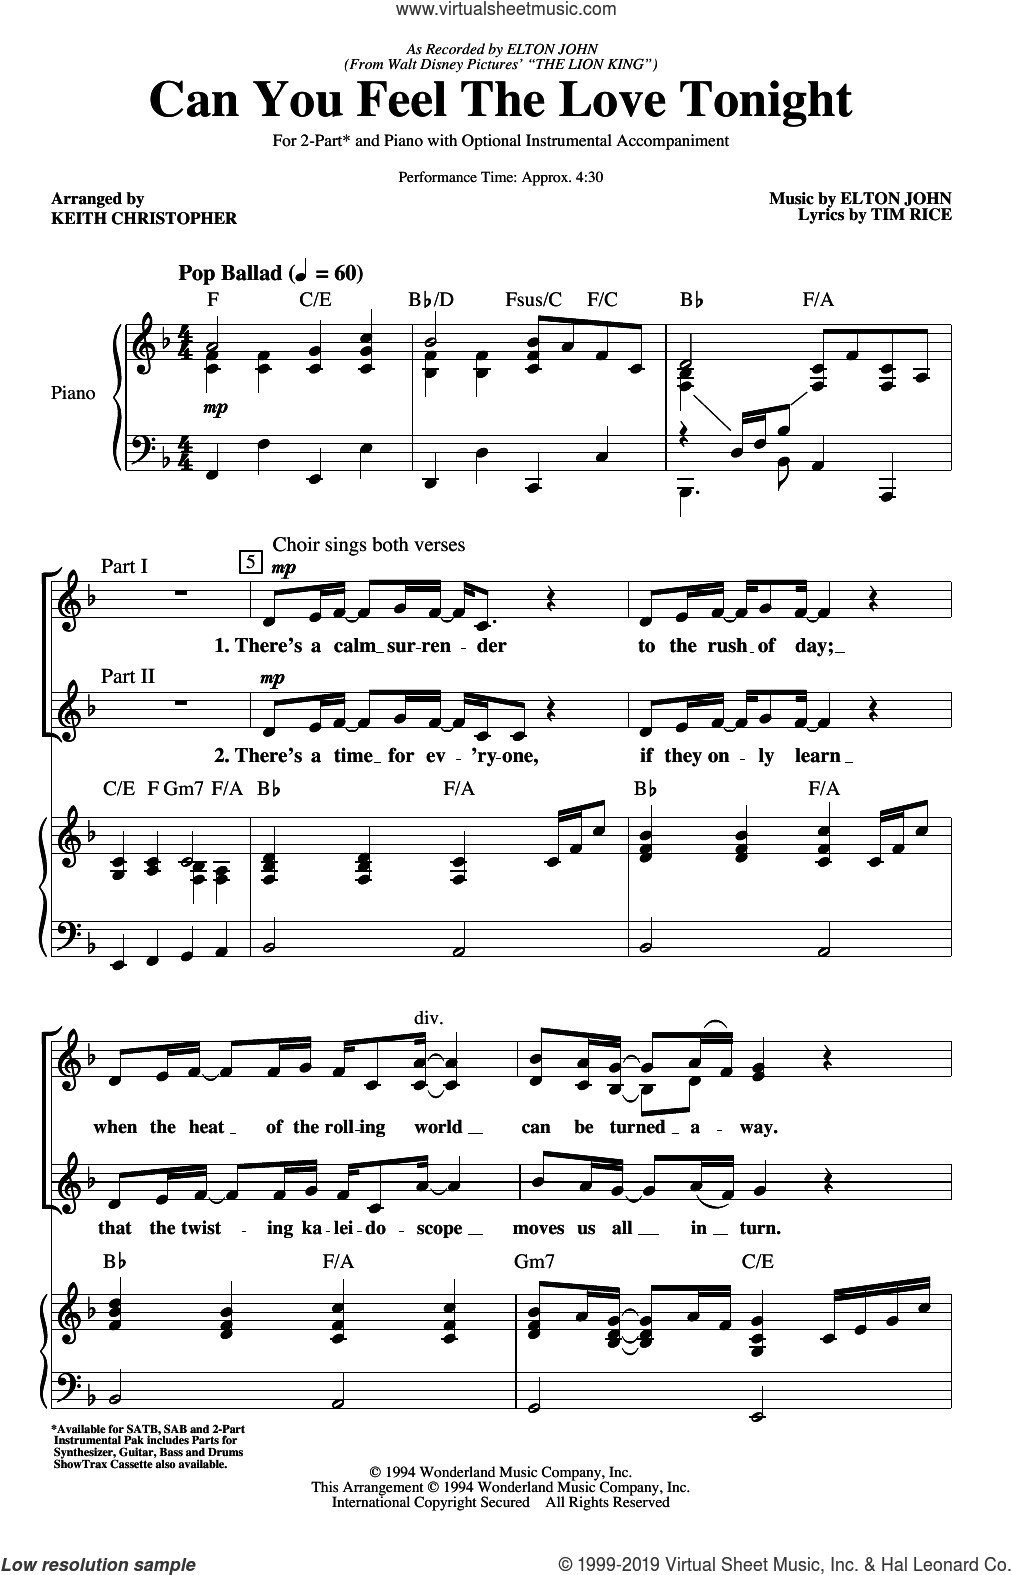 Can You Feel The Love Tonight (from The Lion King) (arr. Keith Christopher) sheet music for choir (SATB: soprano, alto, tenor, bass) by Elton John, Keith Christopher and Tim Rice, intermediate skill level